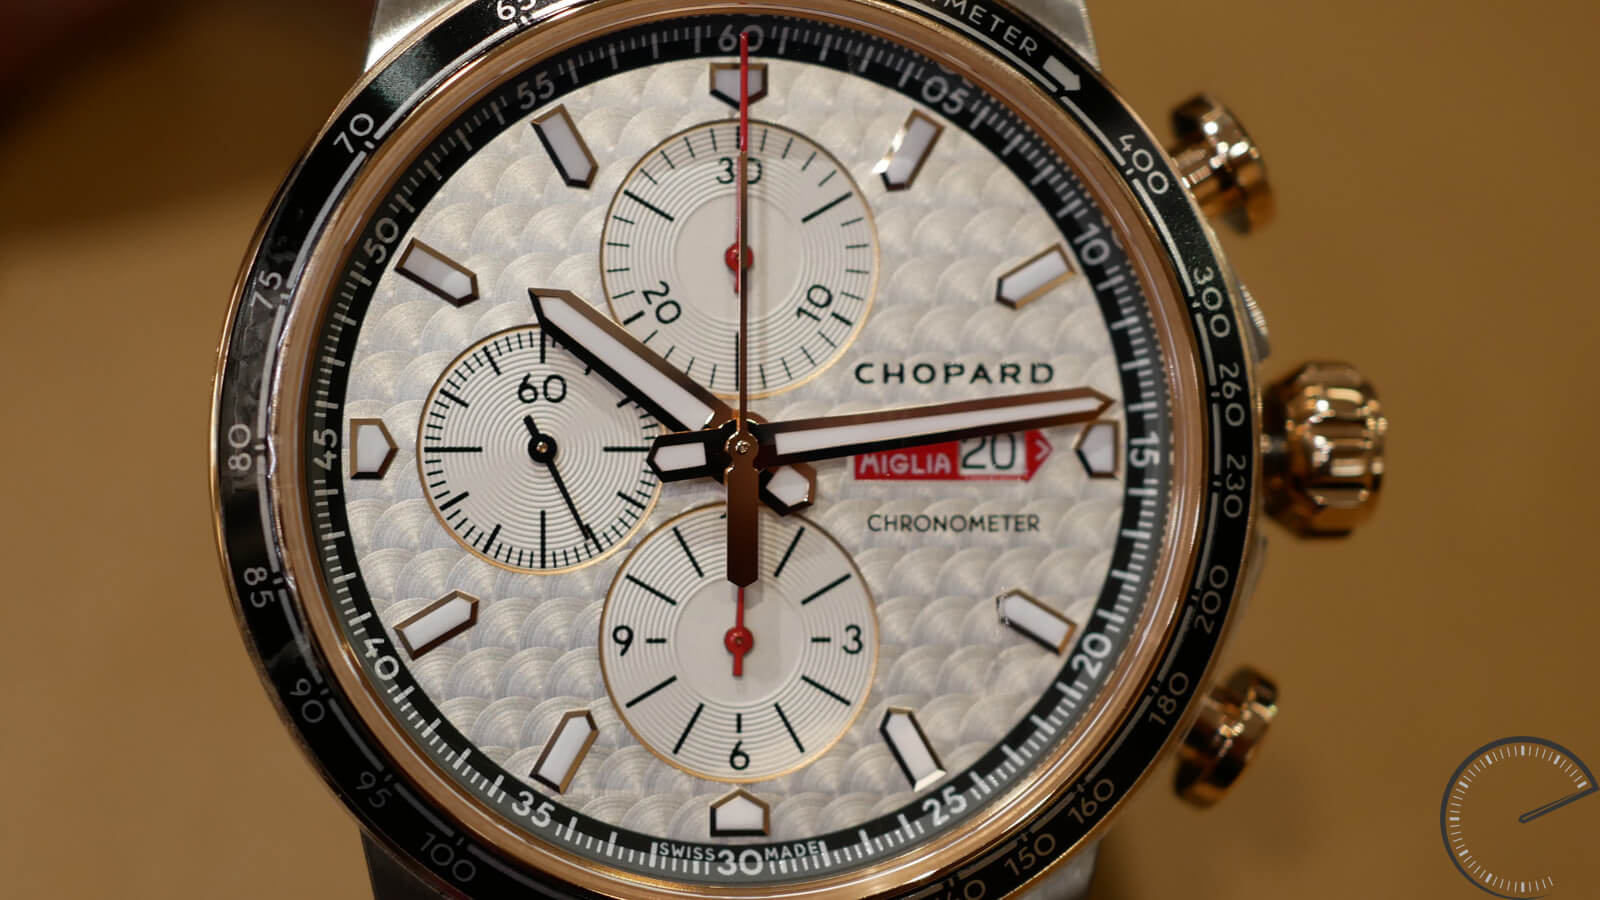 Chopard Mille Miglia Race Edition 2017 - bi-metallic timepiece with chronograph function